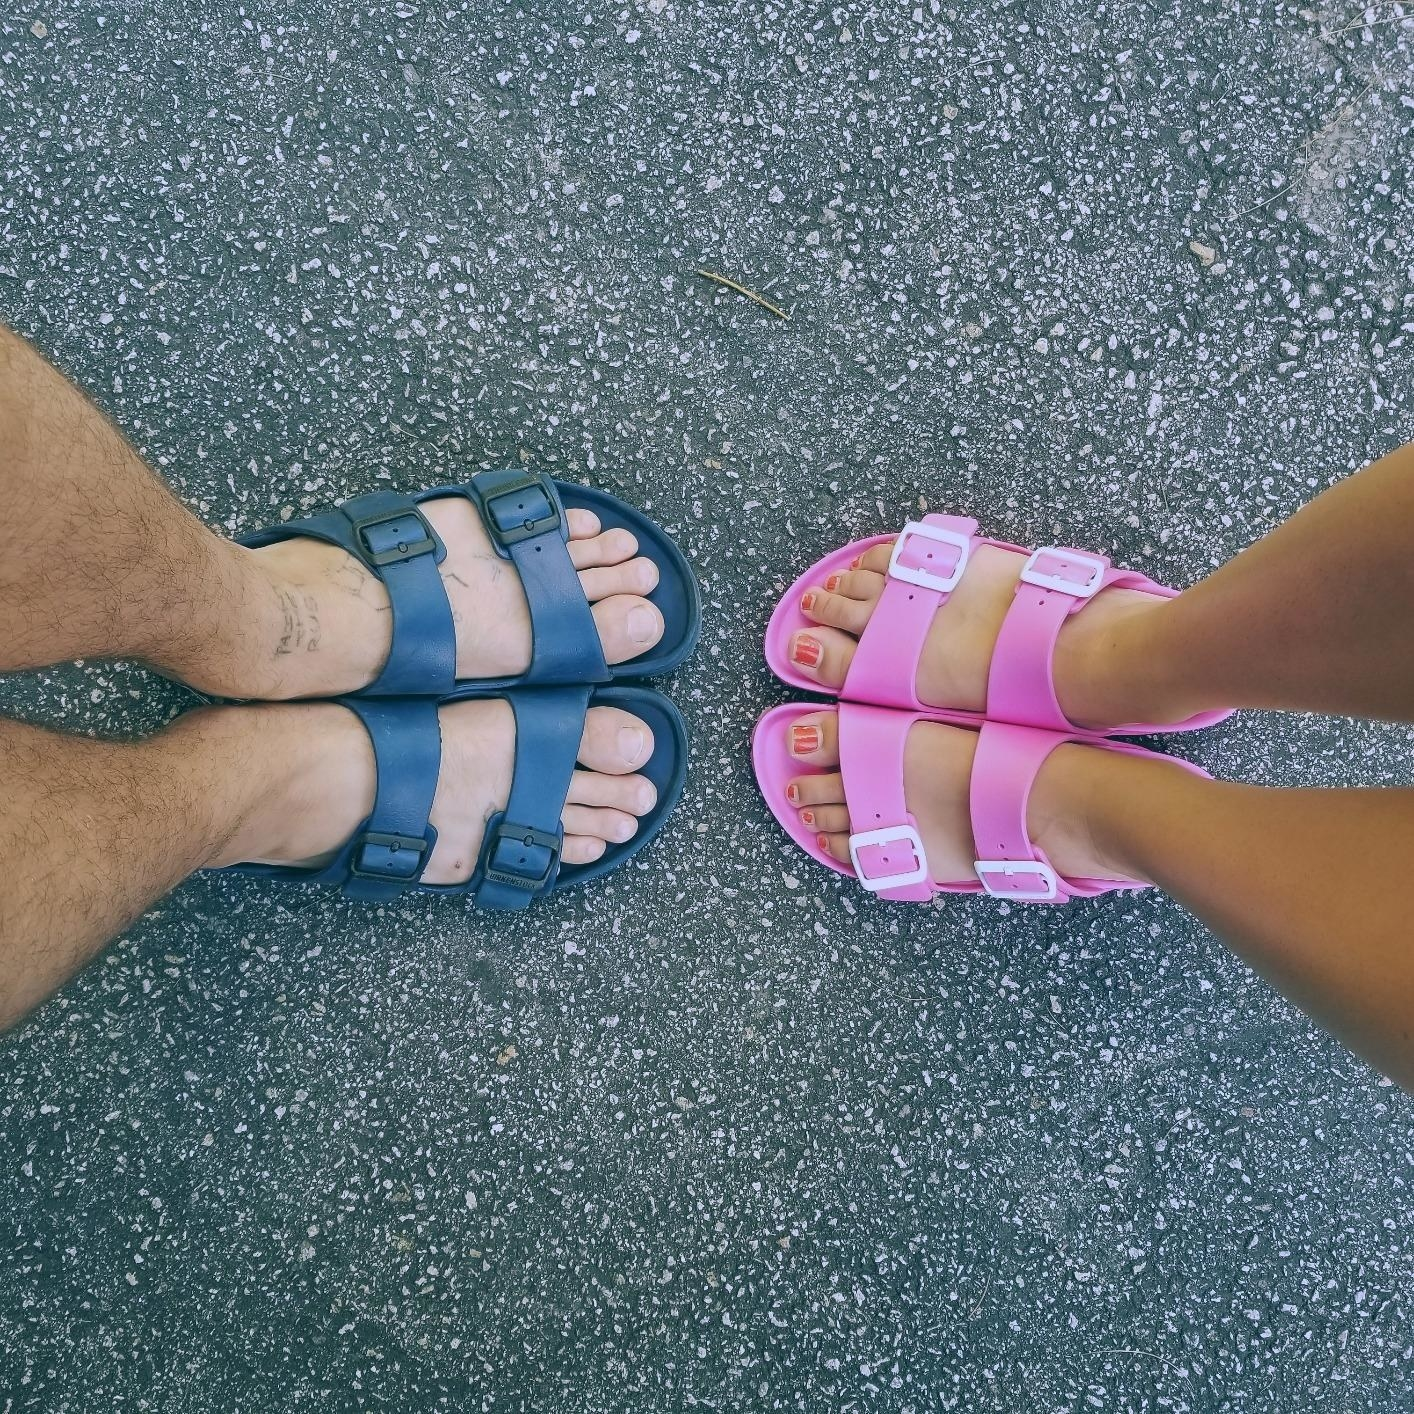 two reviewers's pairs of feet: one in blue, the other in pink Birkenstocks